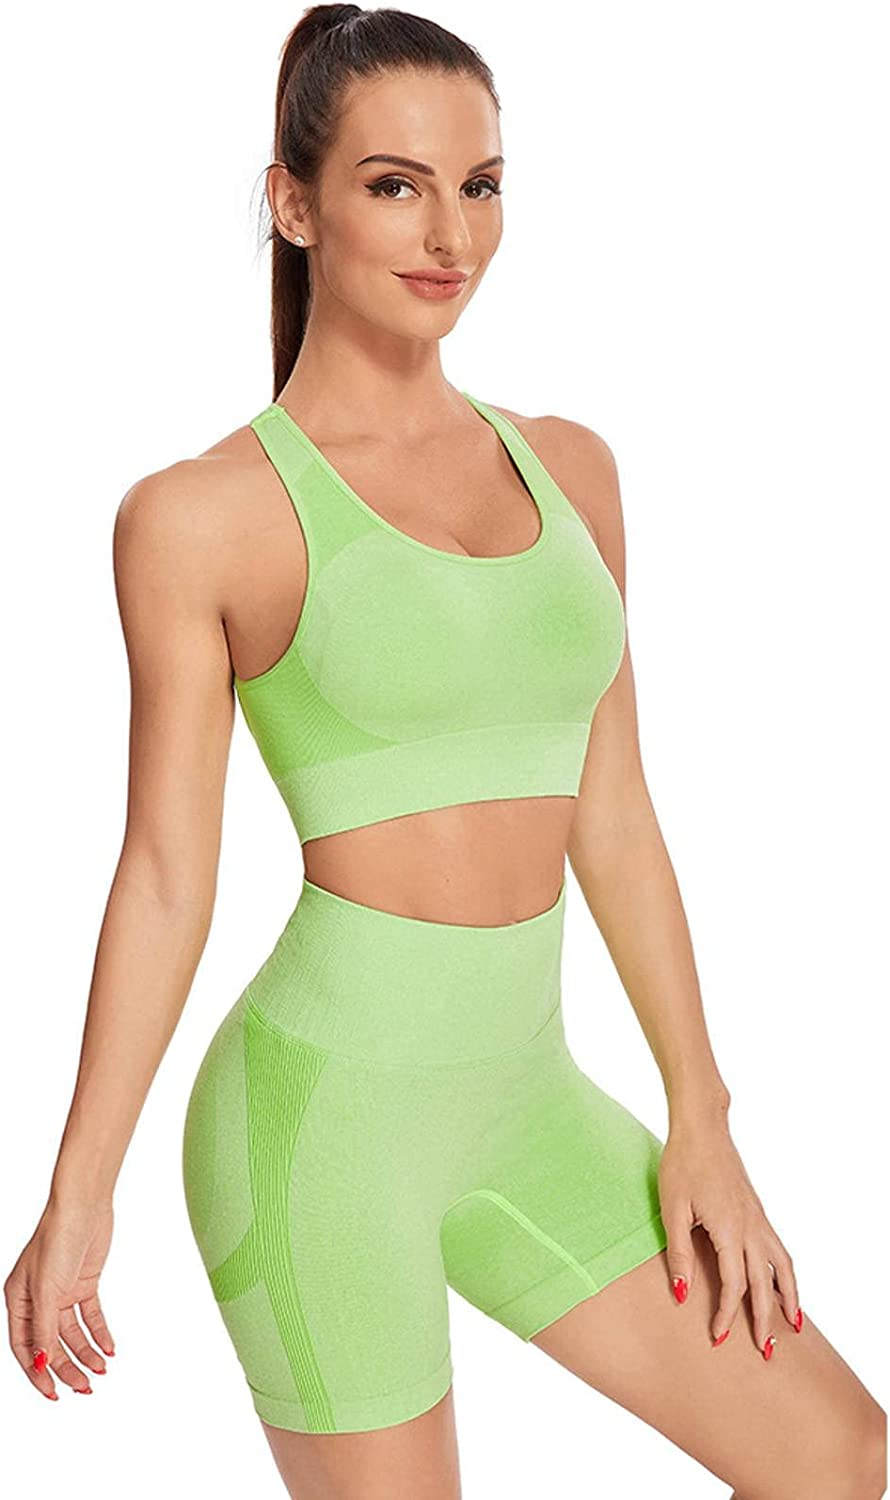 N\C Seamless Knitted Suit Feminine Sports of Short-Sleeved specialty shop Sense Inexpensive